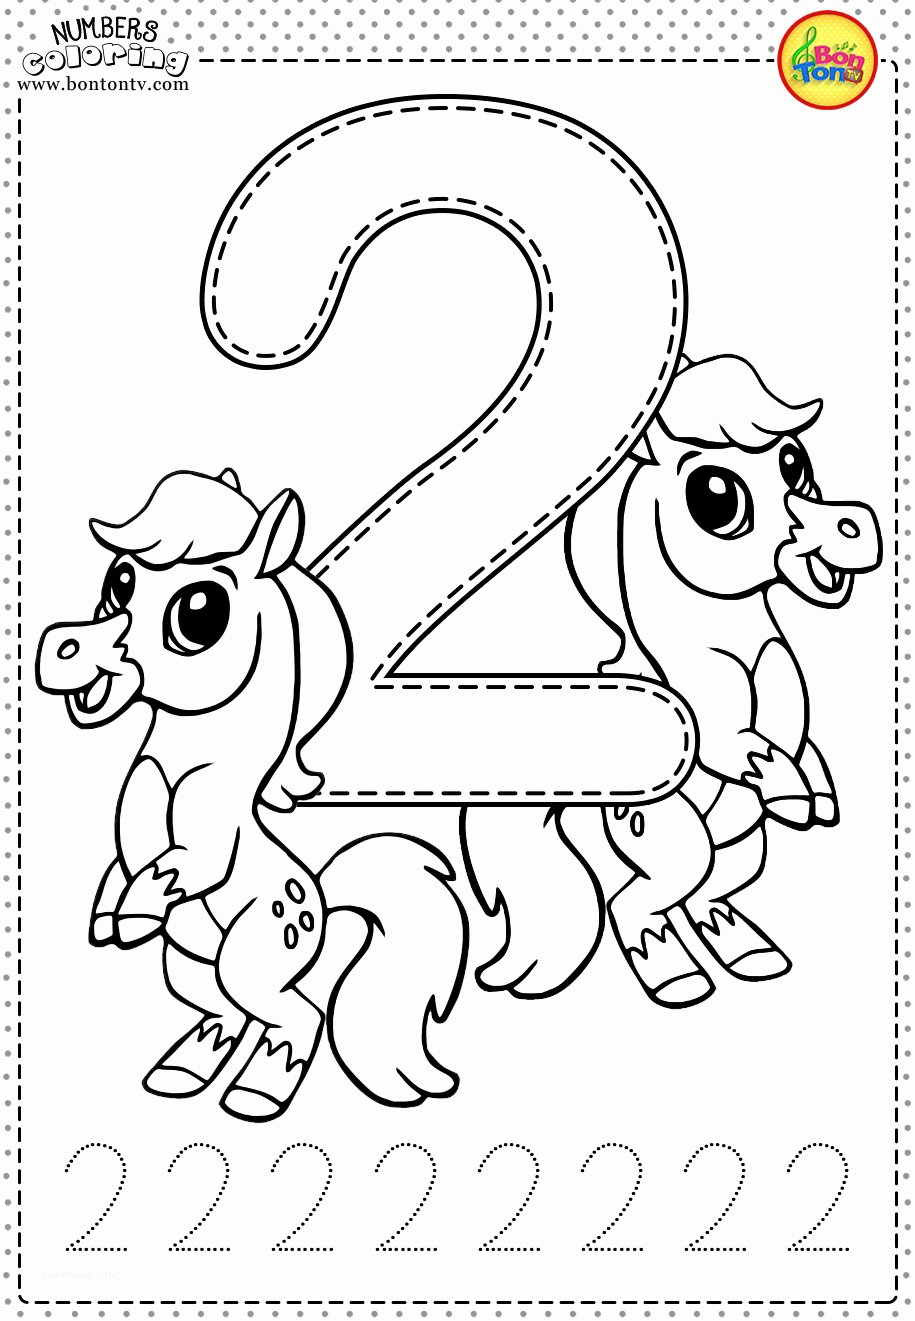 Printable Coloring Worksheets for Preschoolers Unique Printable Coloring Book for toddlers Fresh Number Preschool